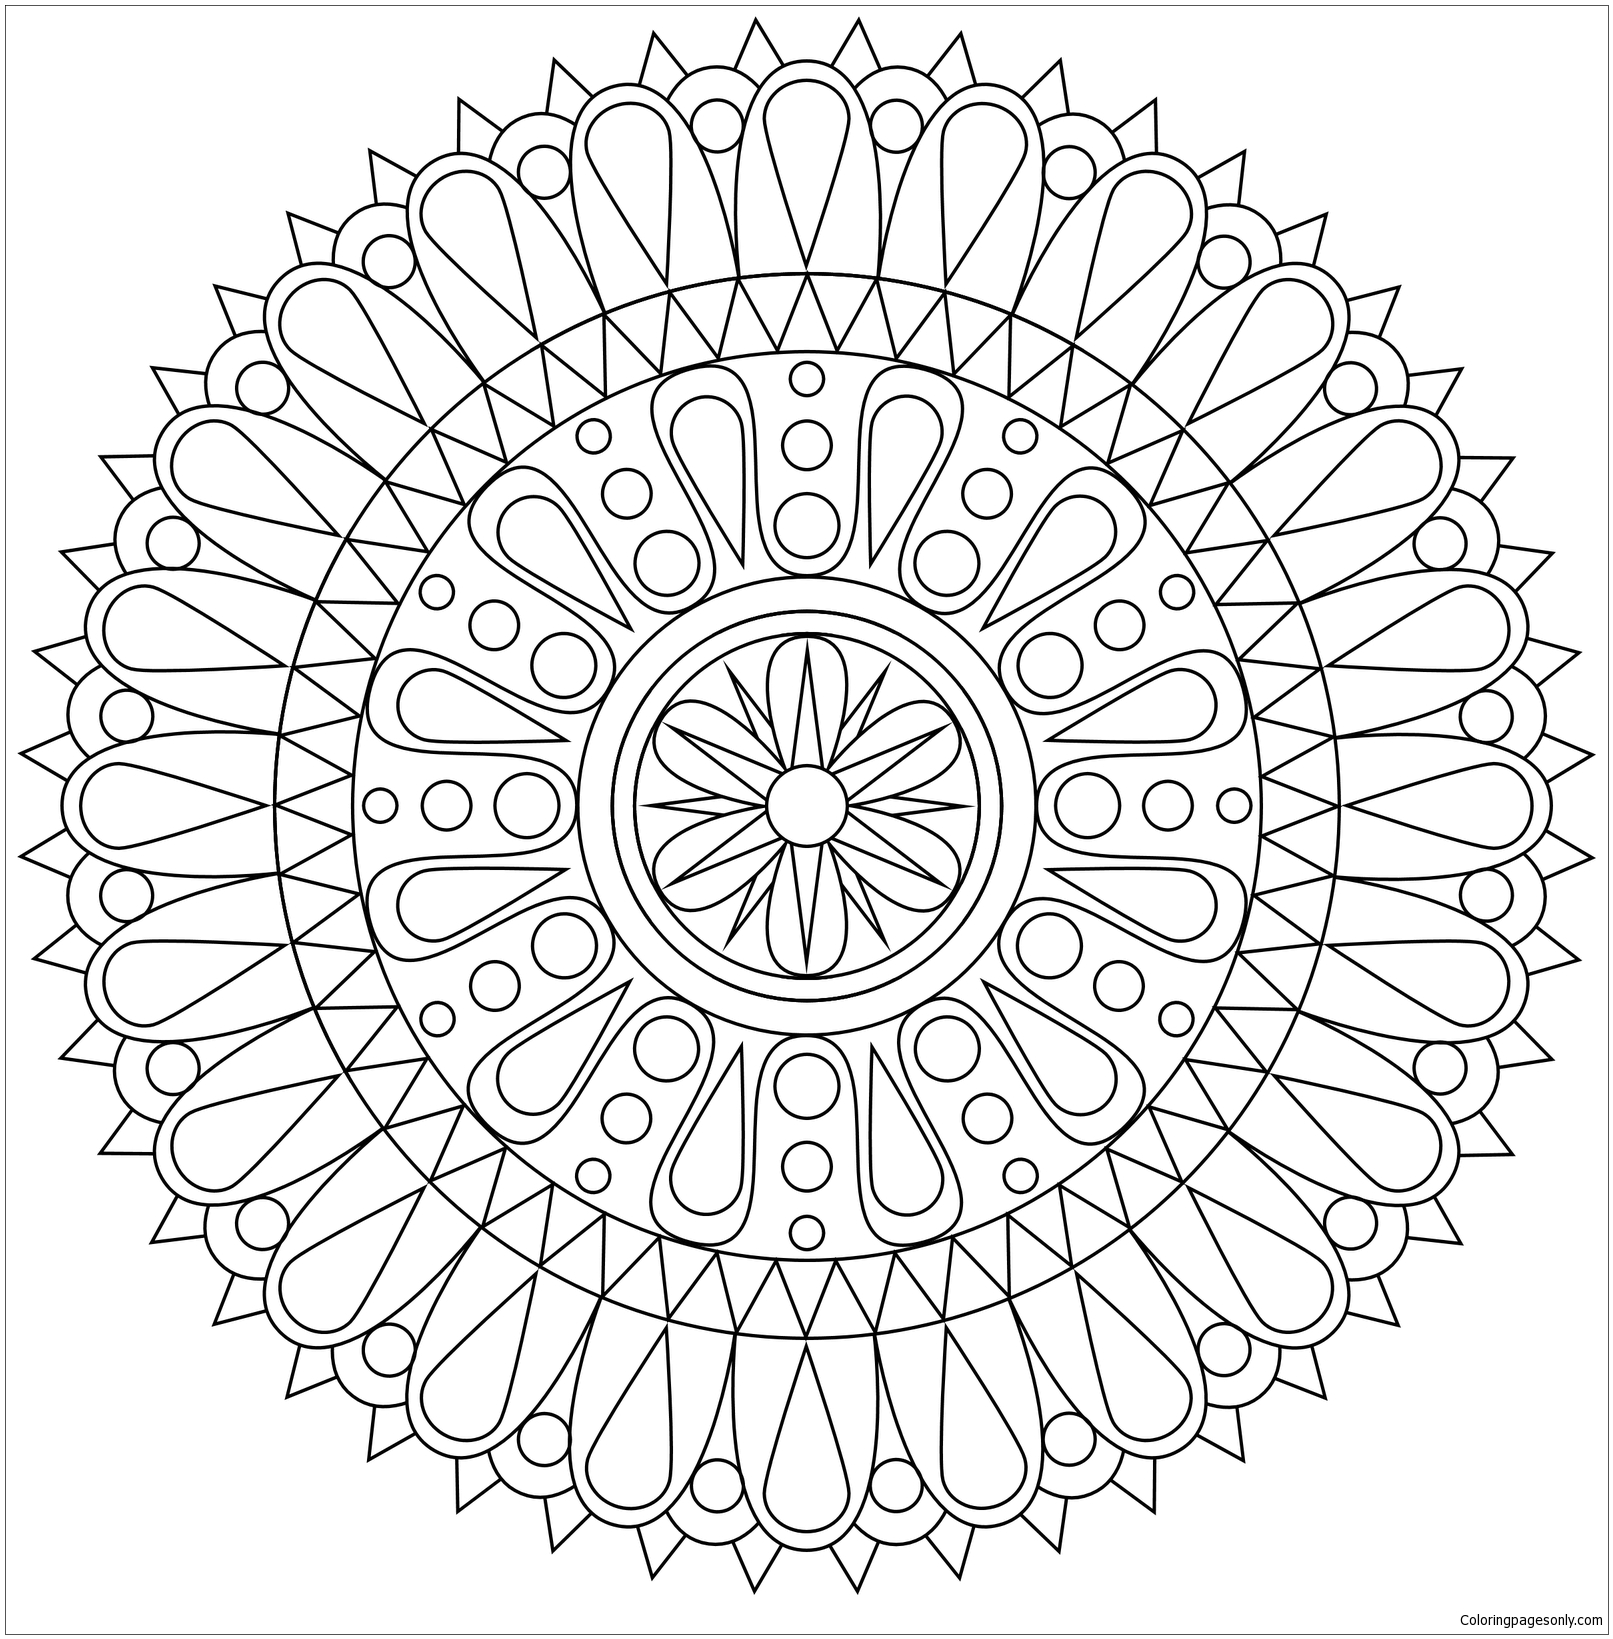 The Best Alternative To Meditation Coloring Page